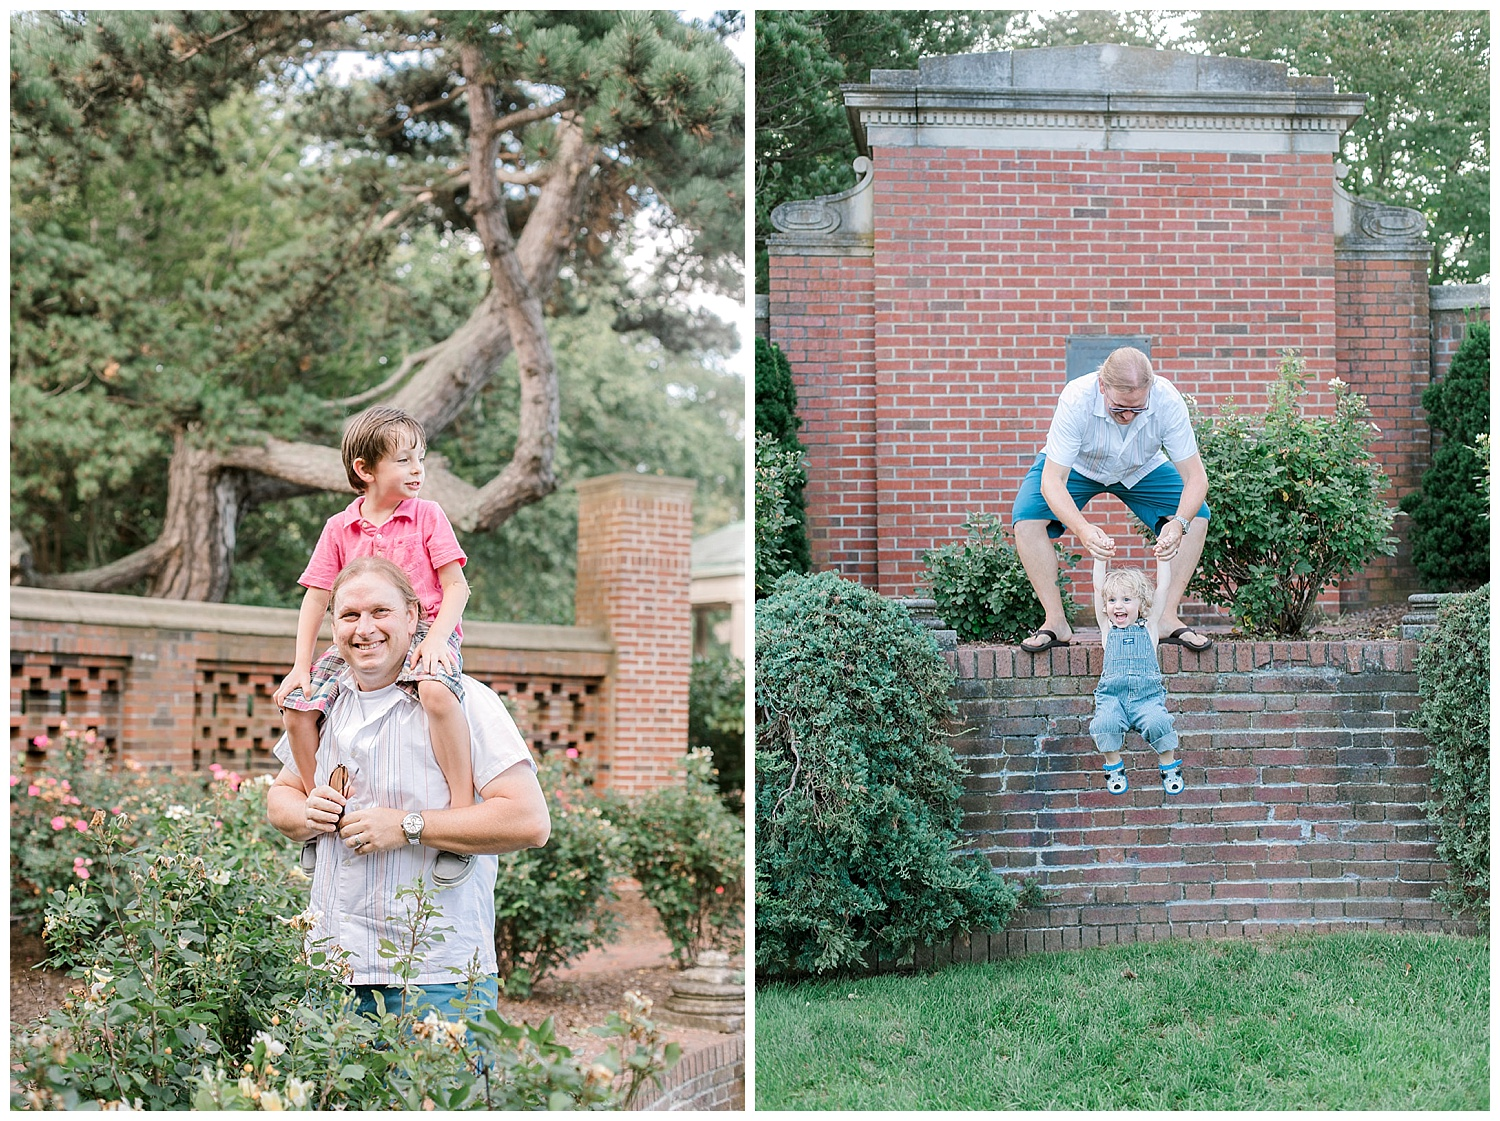 lynch park beverly family photo session